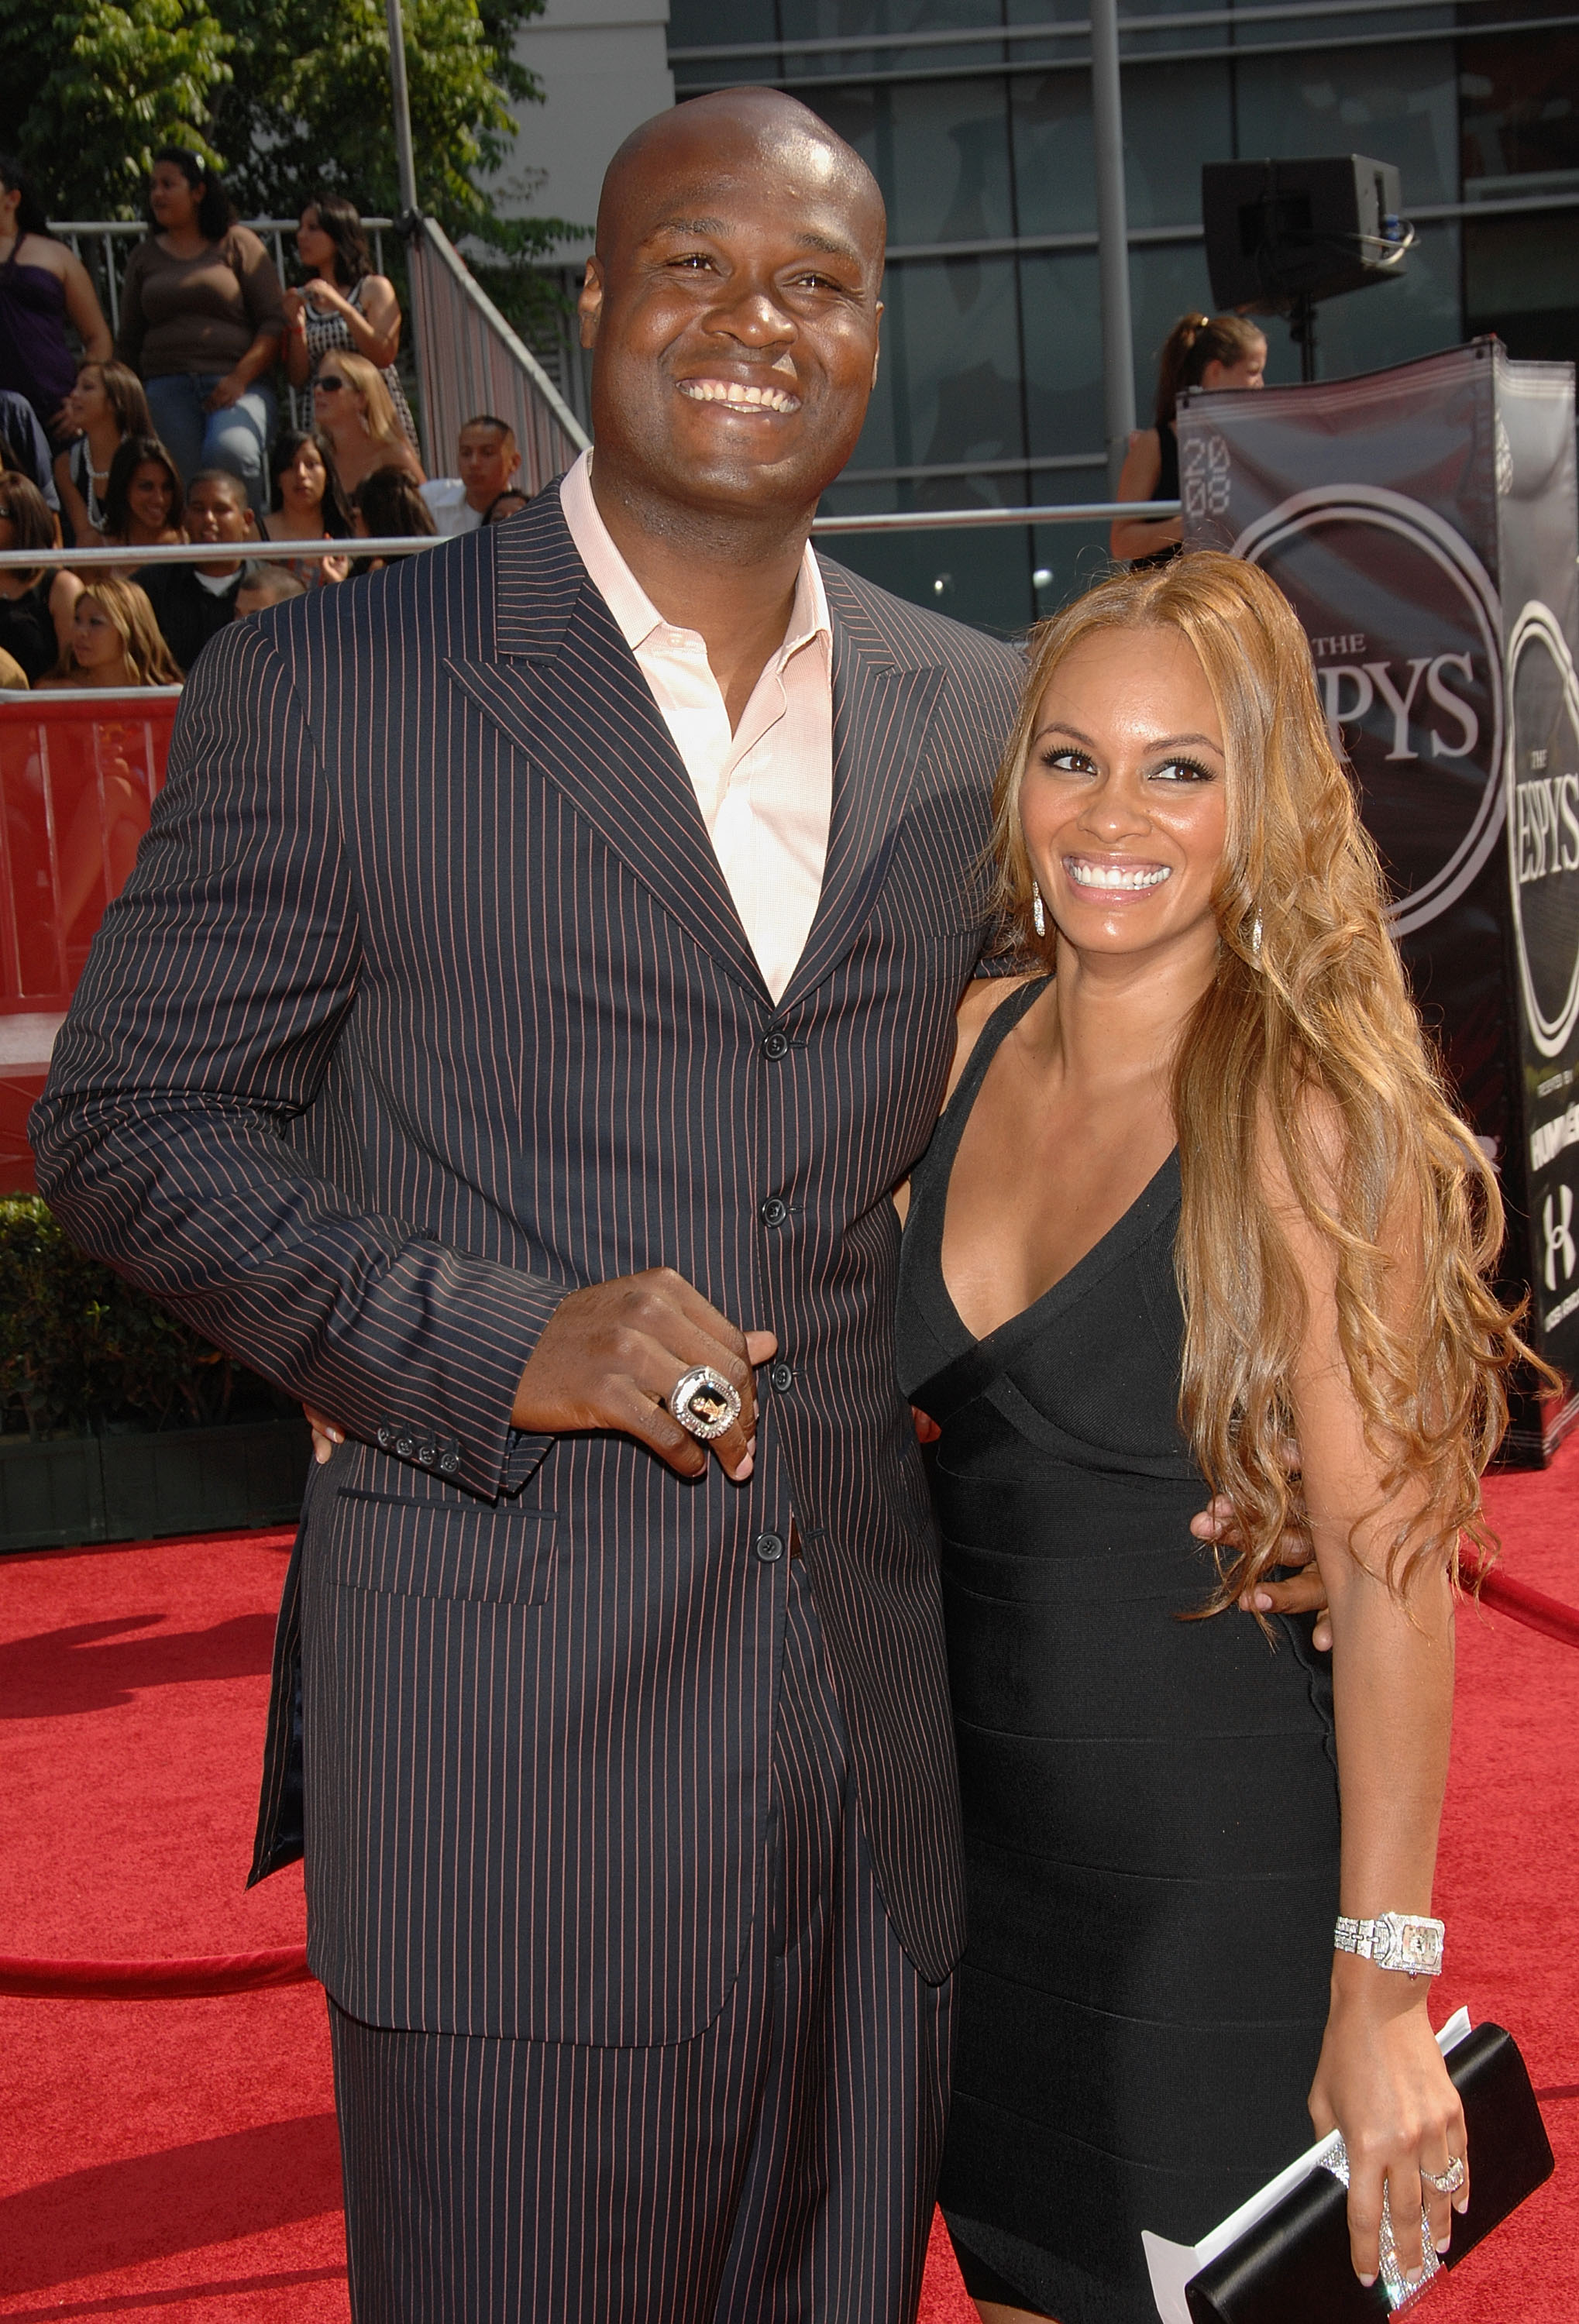 LOS ANGELES, CA - JULY 16:  NBA athlete Antoine Walker and guest arrive at the 2008 ESPY Awards held at NOKIA Theatre L.A. LIVE on July 16, 2008 in Los Angeles, California.  The 2008 ESPYs will air on Sunday, July 20 at 9PM ET on ESPN.  (Photo by Stephen